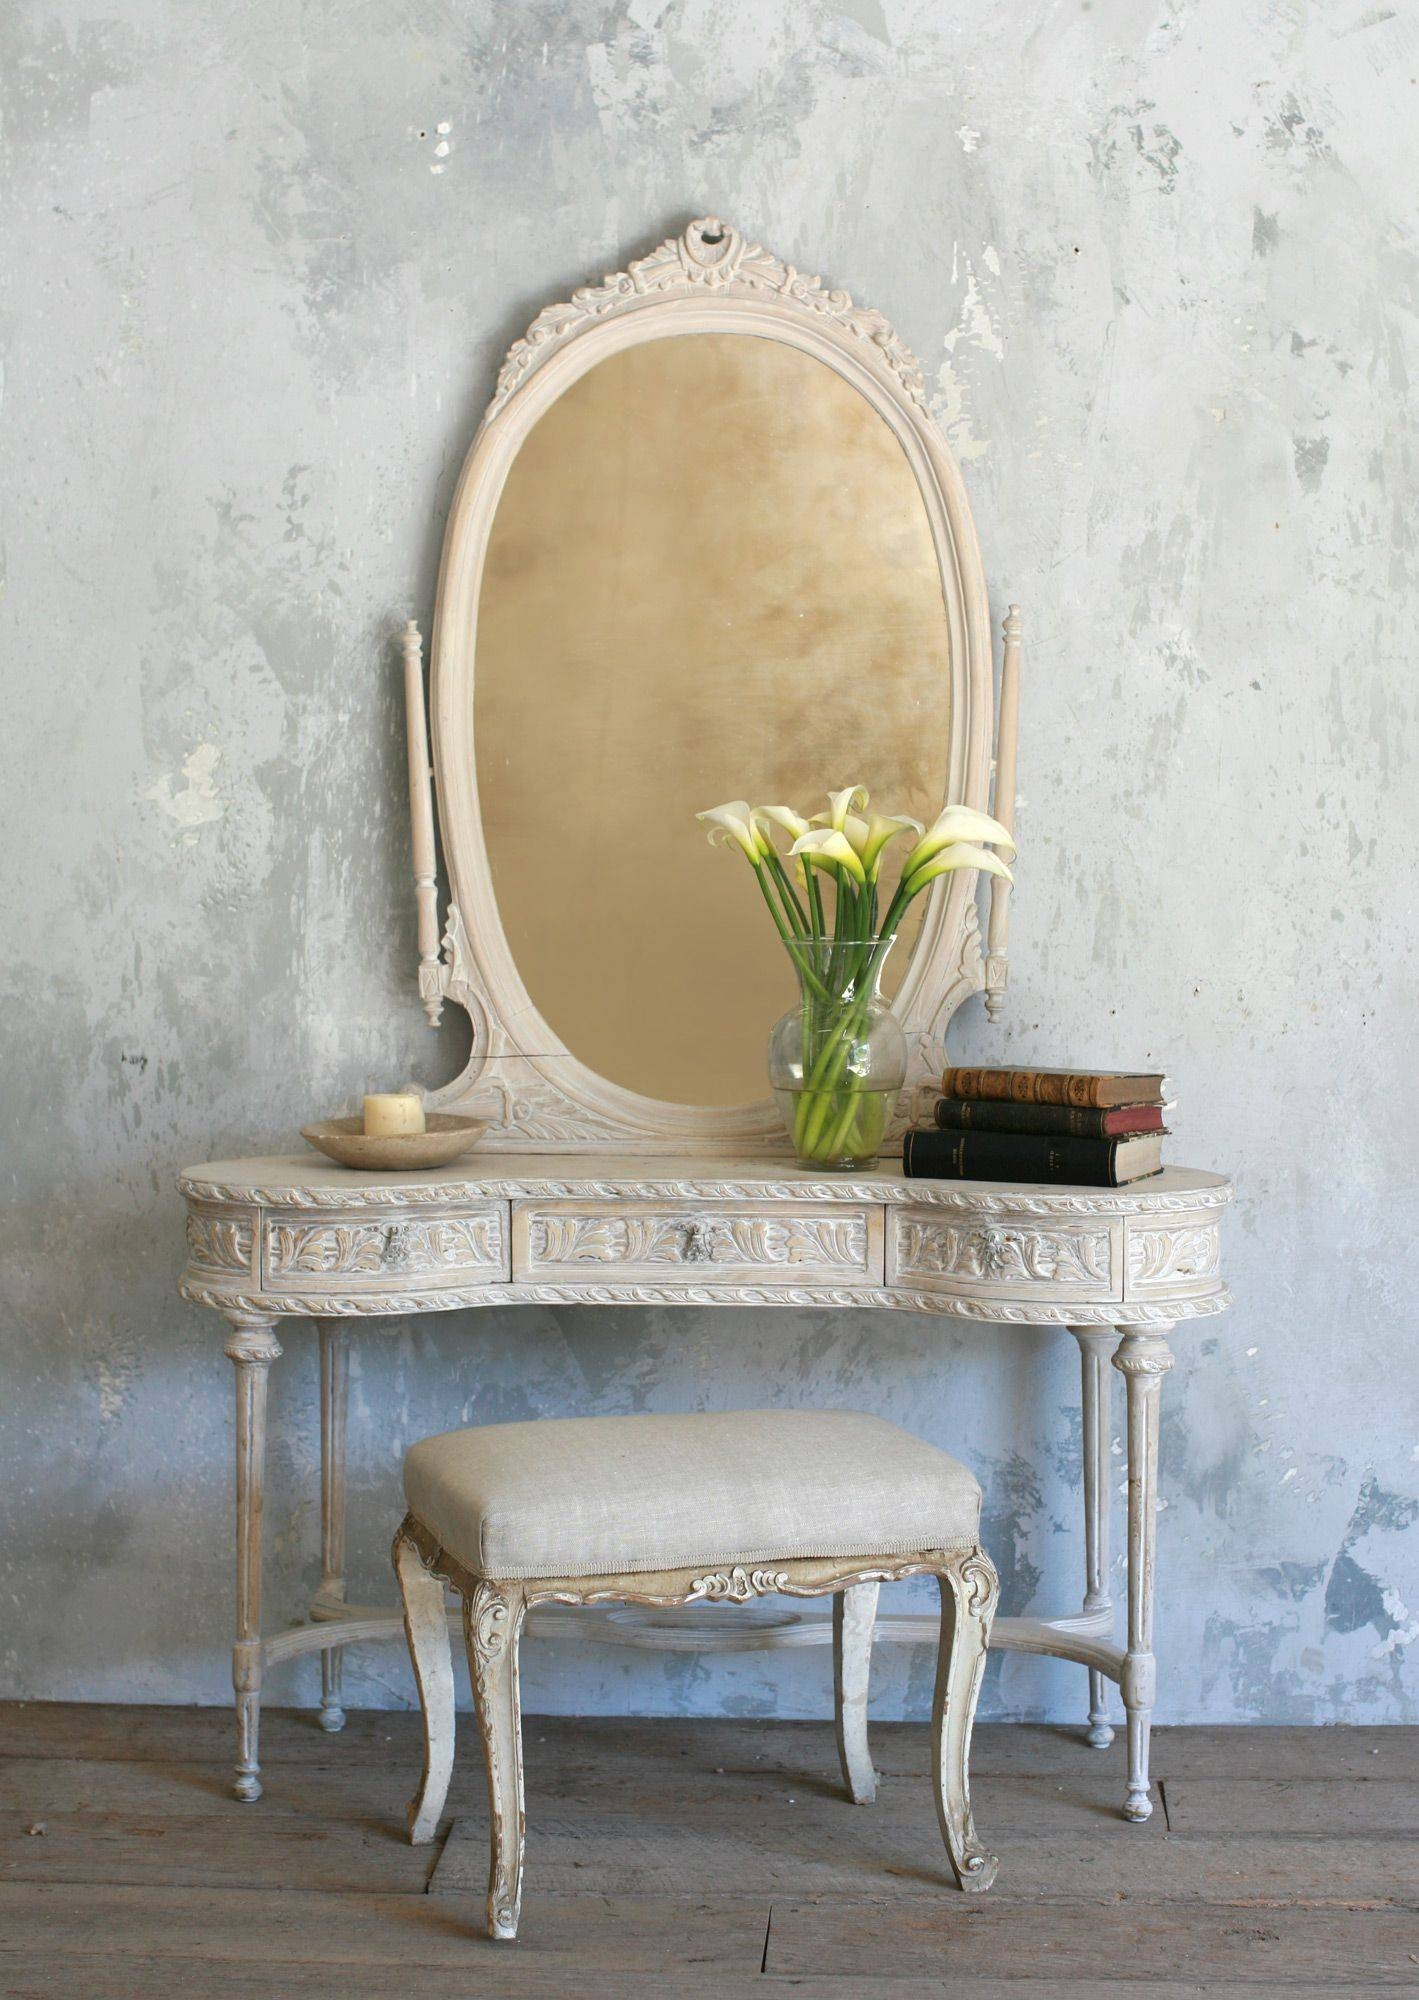 Bedroom Antique Mirror Vanity Table Tray With Value Round in White Antique Mirrors (Image 10 of 25)